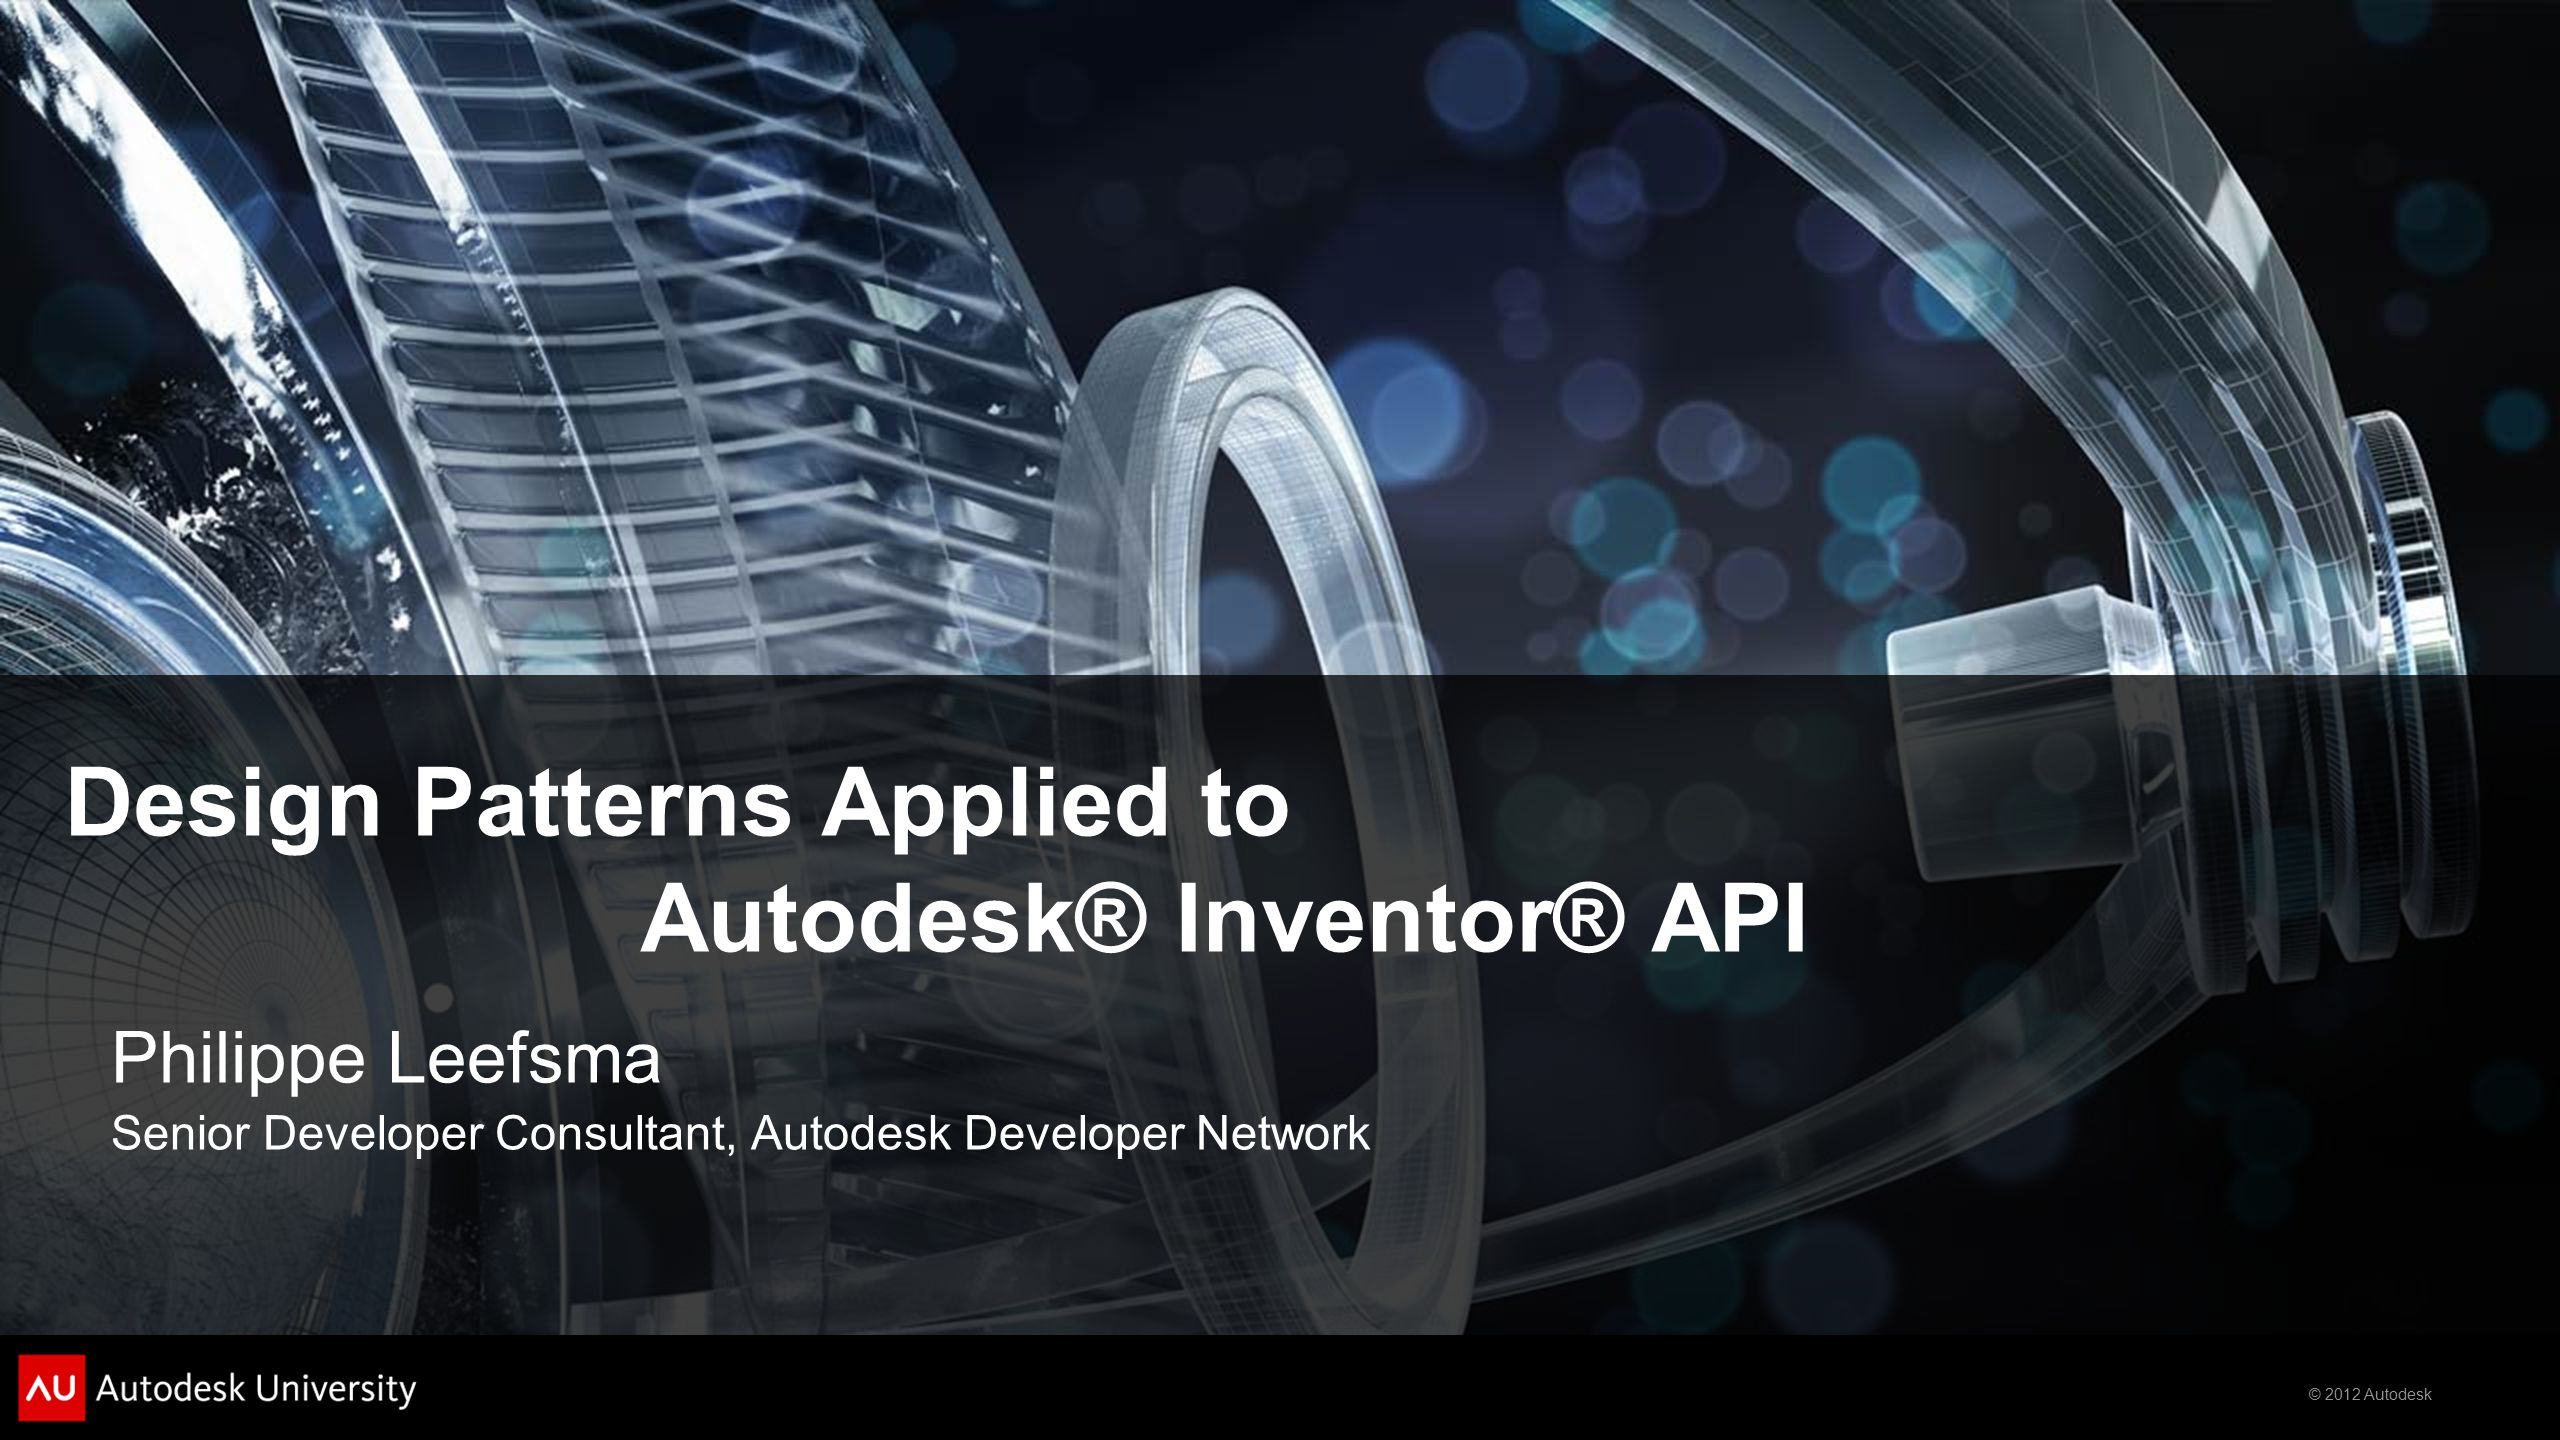 Design Patterns Applied to Autodesk® Inventor® API